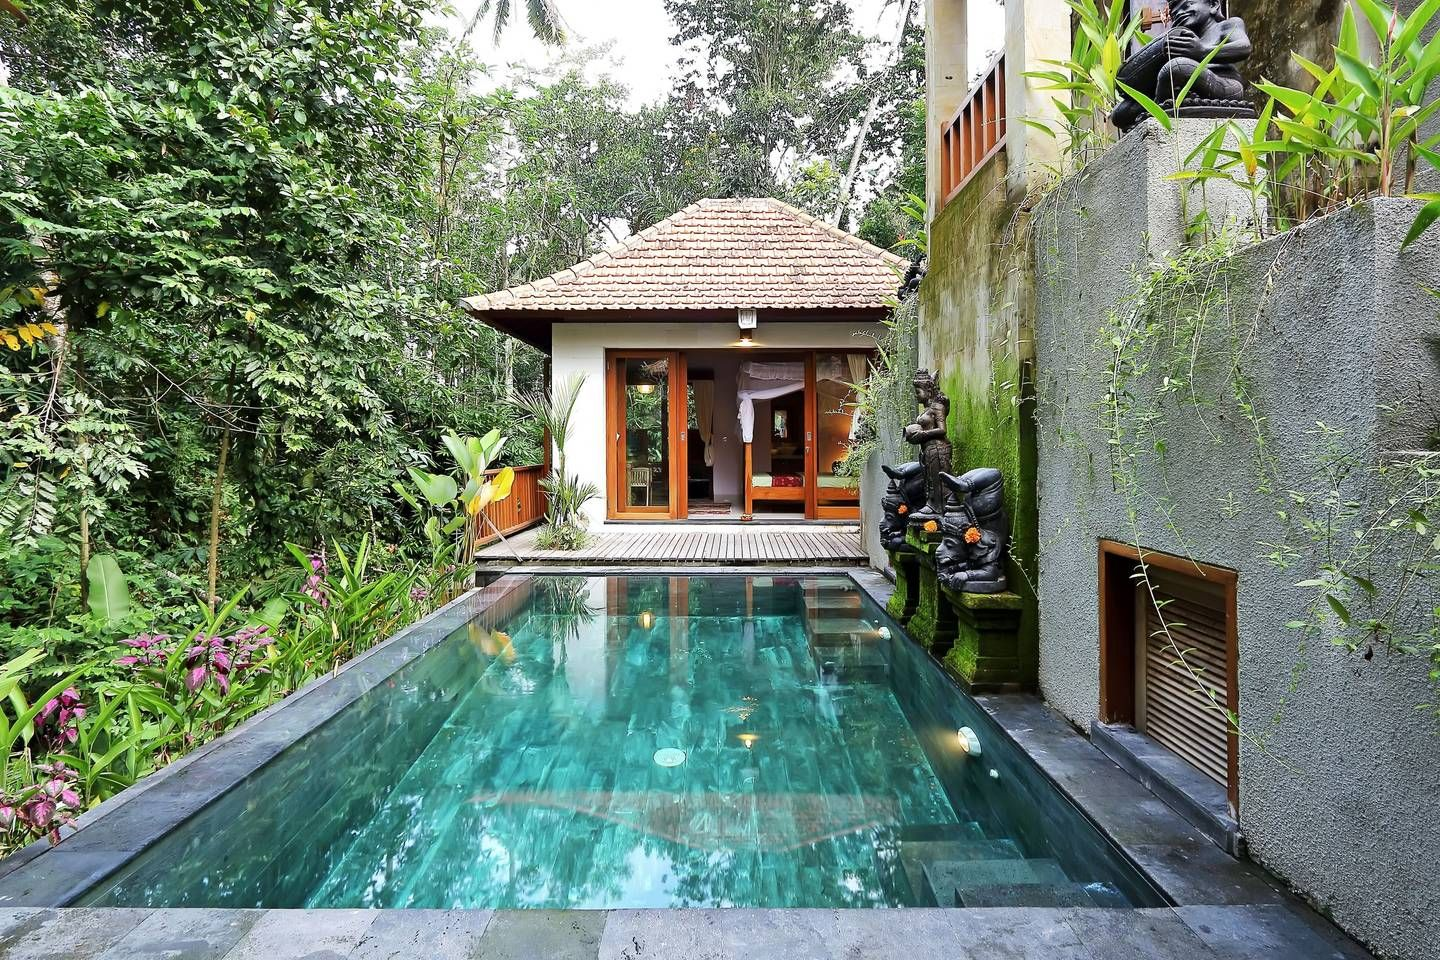 Gorgeous Jungle View 1br Villa Pool Rice Fields Villas For Rent In Ubud Bali Indonesia Indonesia